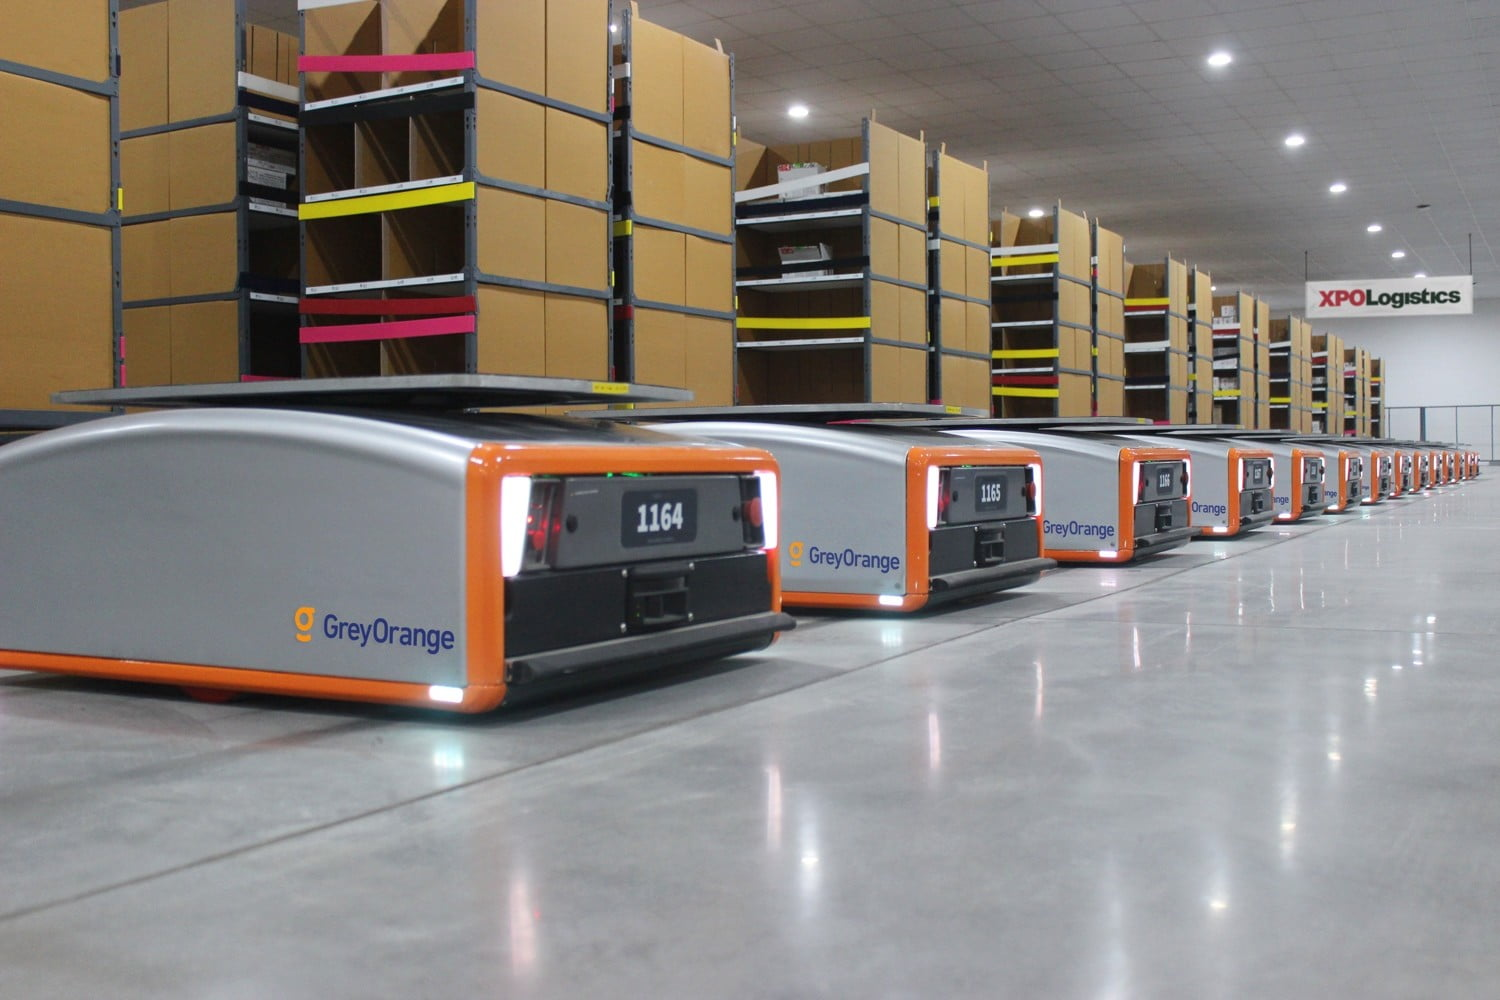 XPO Logistics Will Add 5,000 Smart Robots to Help Speed Up